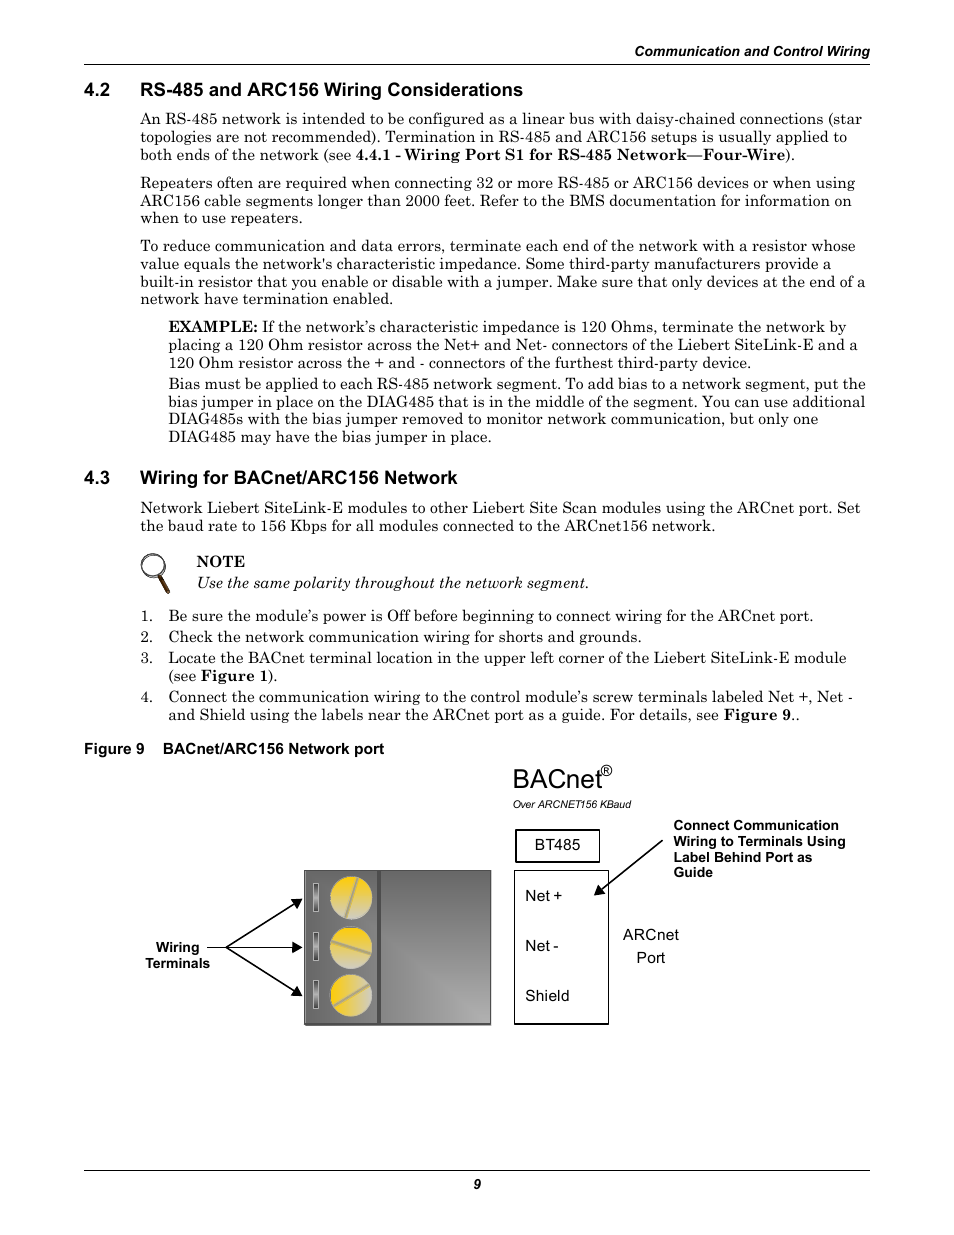 carrier weathermaker bacnet wiring diagram 2 rs-485 and arc156 wiring considerations, 3 wiring for bacnet/arc156 network, figure 9 bacnet ... votage bacnet wiring